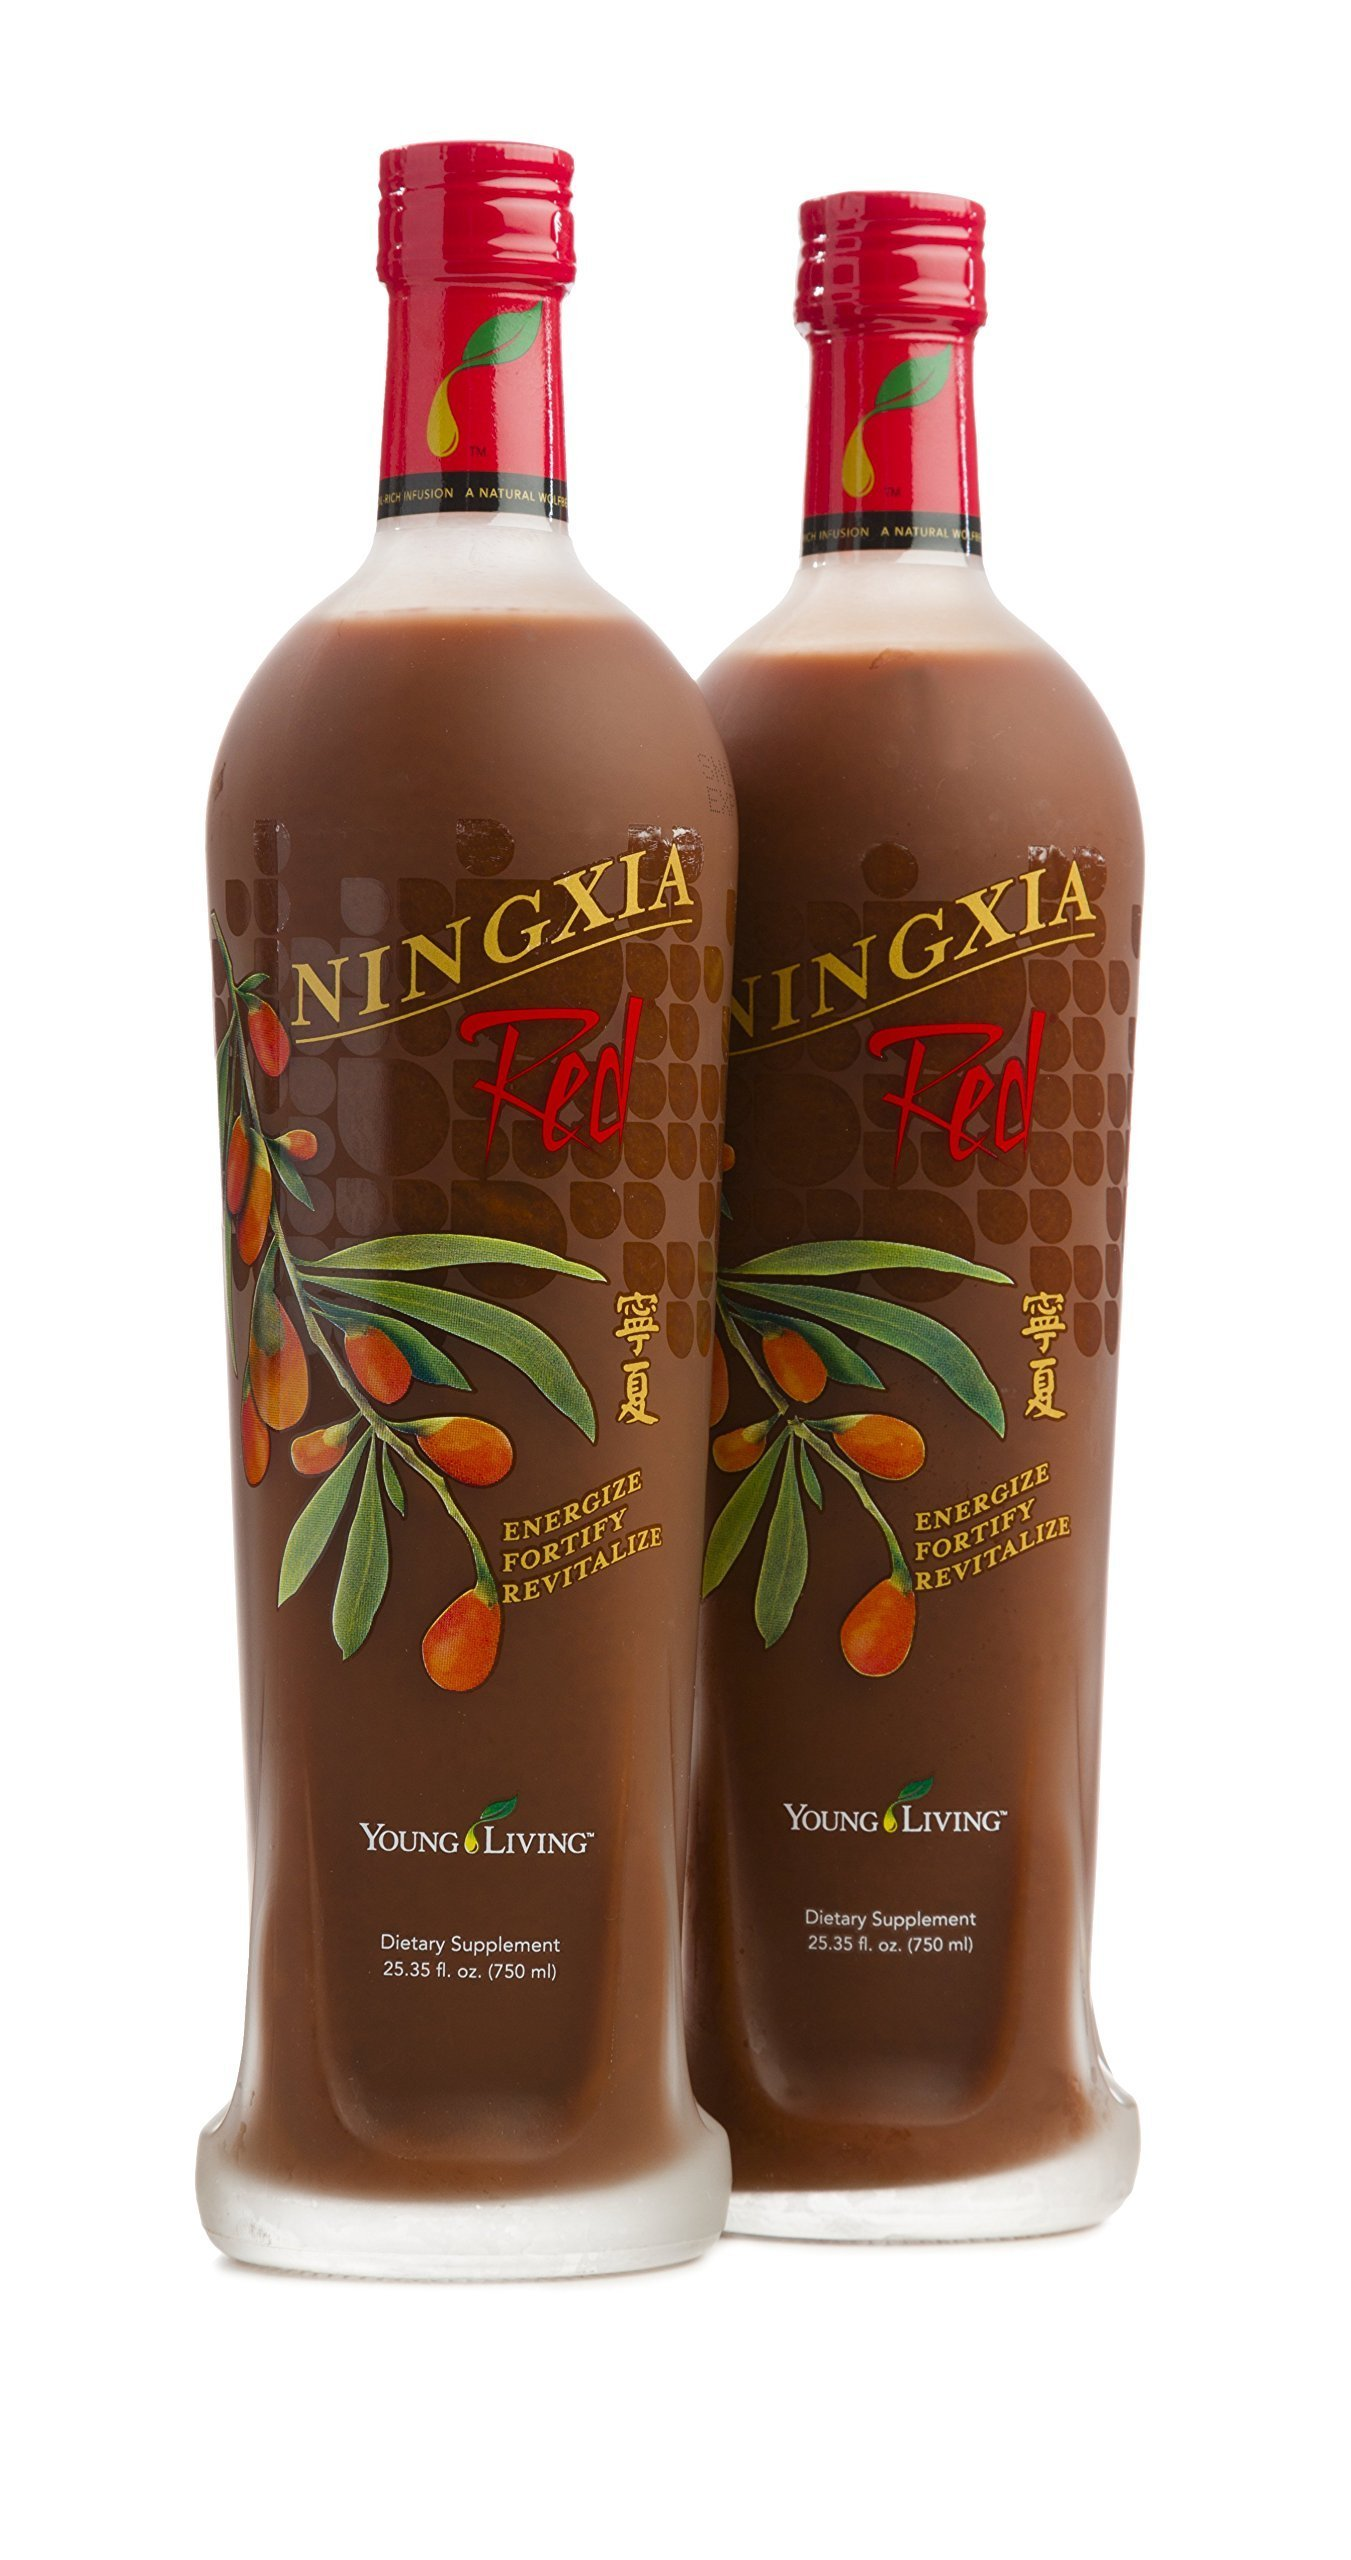 Young Living NingXia Red - New Formula - 2 Bottles